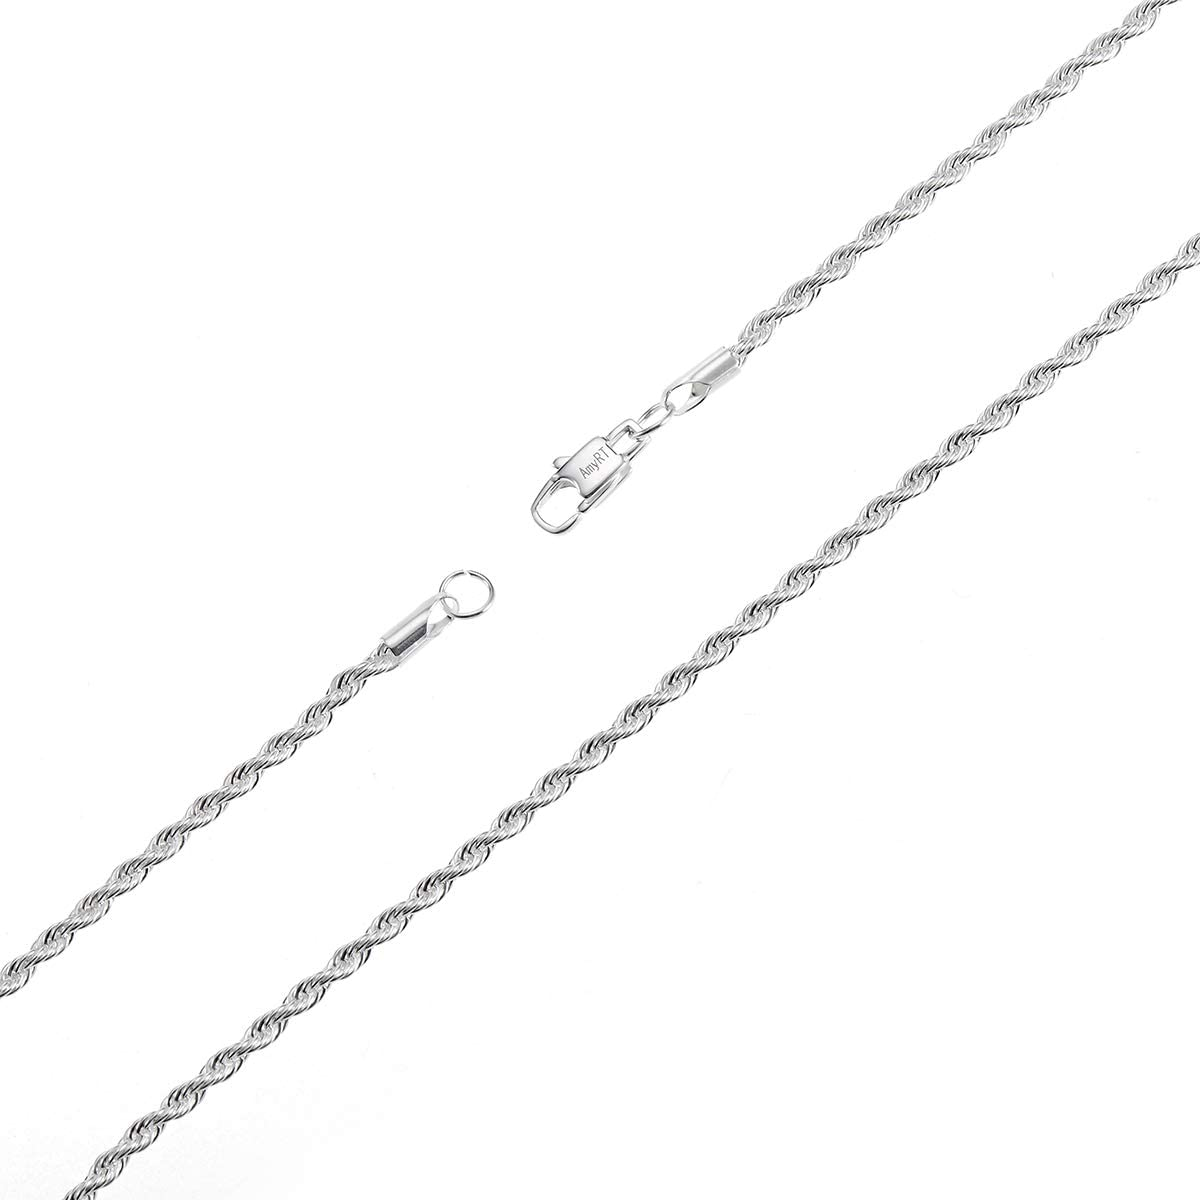 AmyRT Silver Twist Rope Chain Necklace,3mm Stainless Steel Mens Womens Necklace 16 to 30 inch